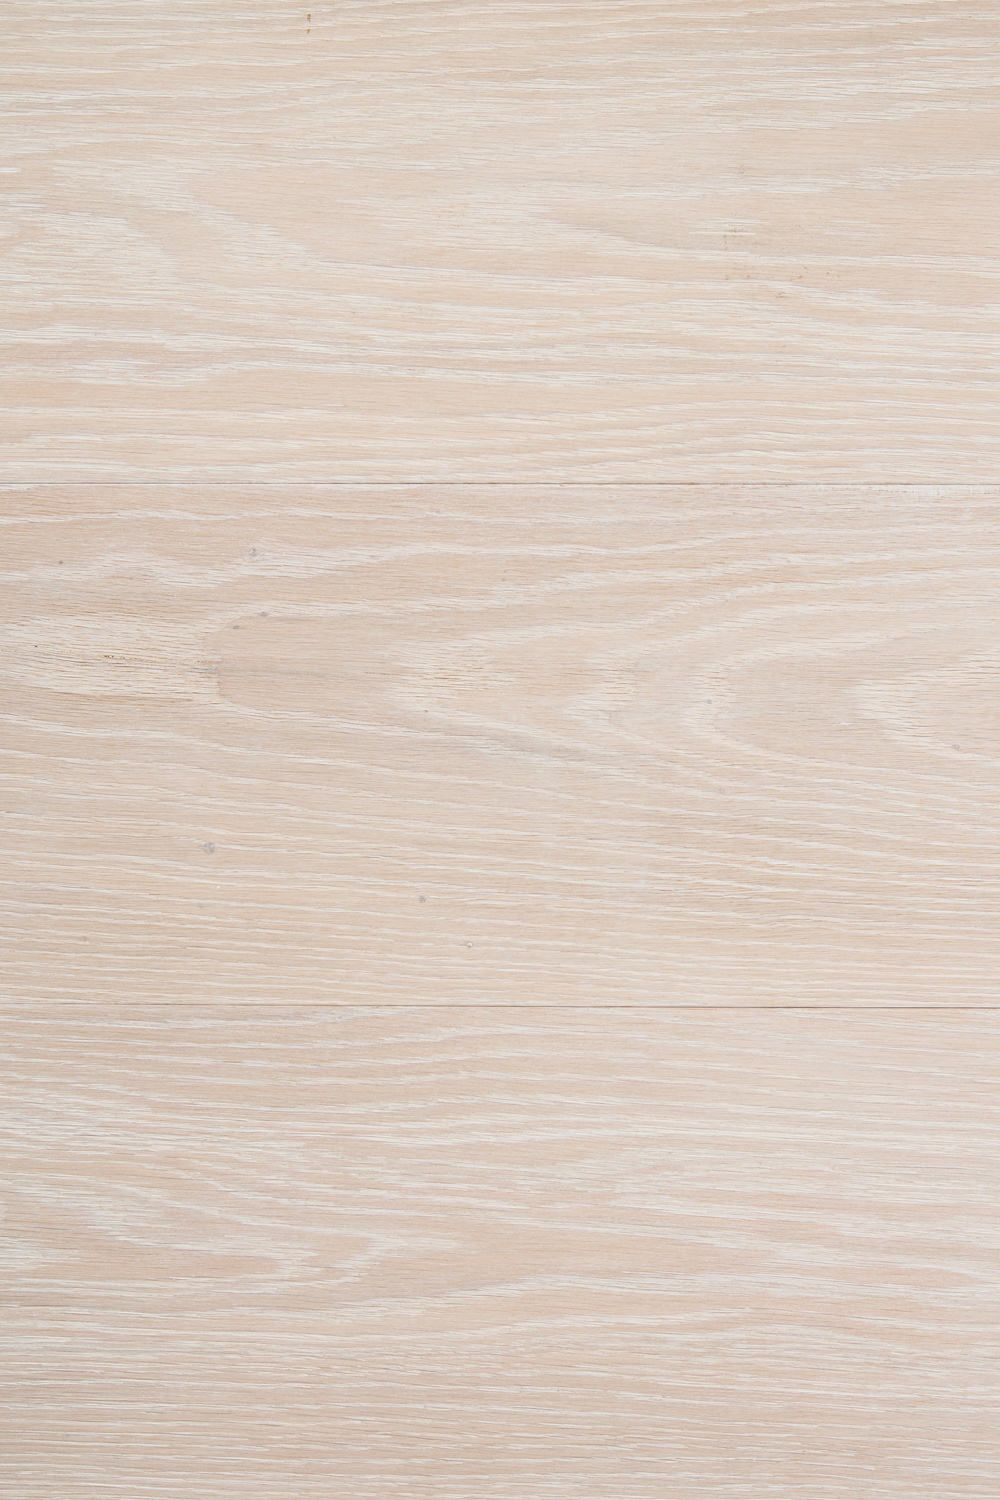 """White Washed Oak Flooring """"Lime Washed Oak"""" available in Character ..."""